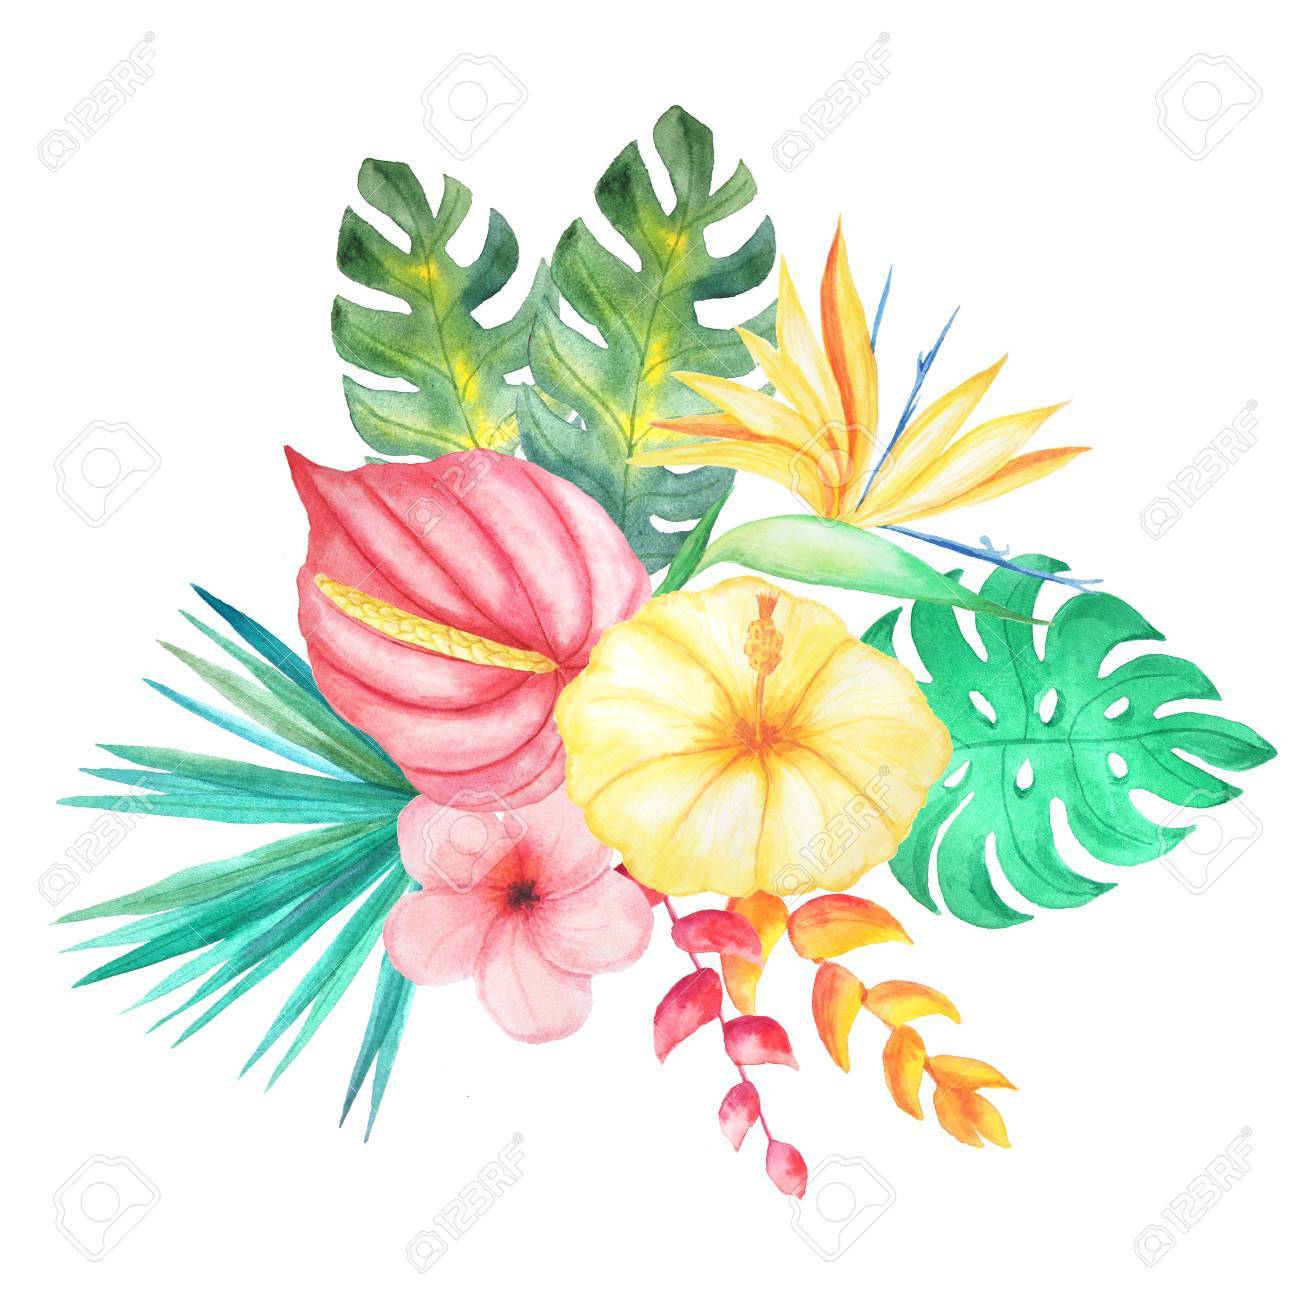 set of watercolor hand painted tropical flowers leaves and plants rh 123rf com